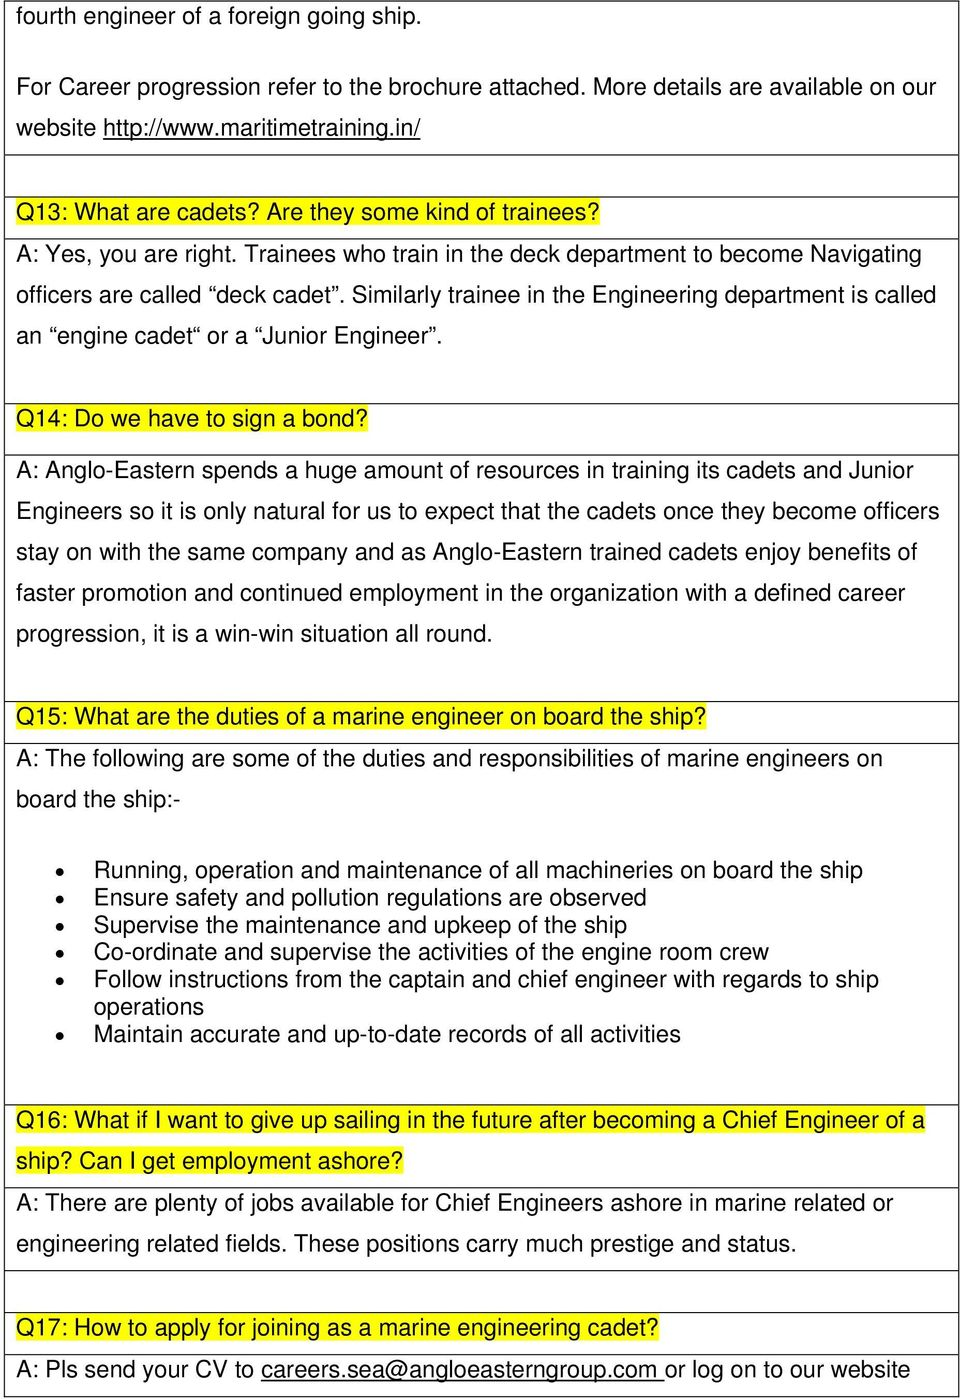 FAQ's for Joining as a Marine Engineer - PDF